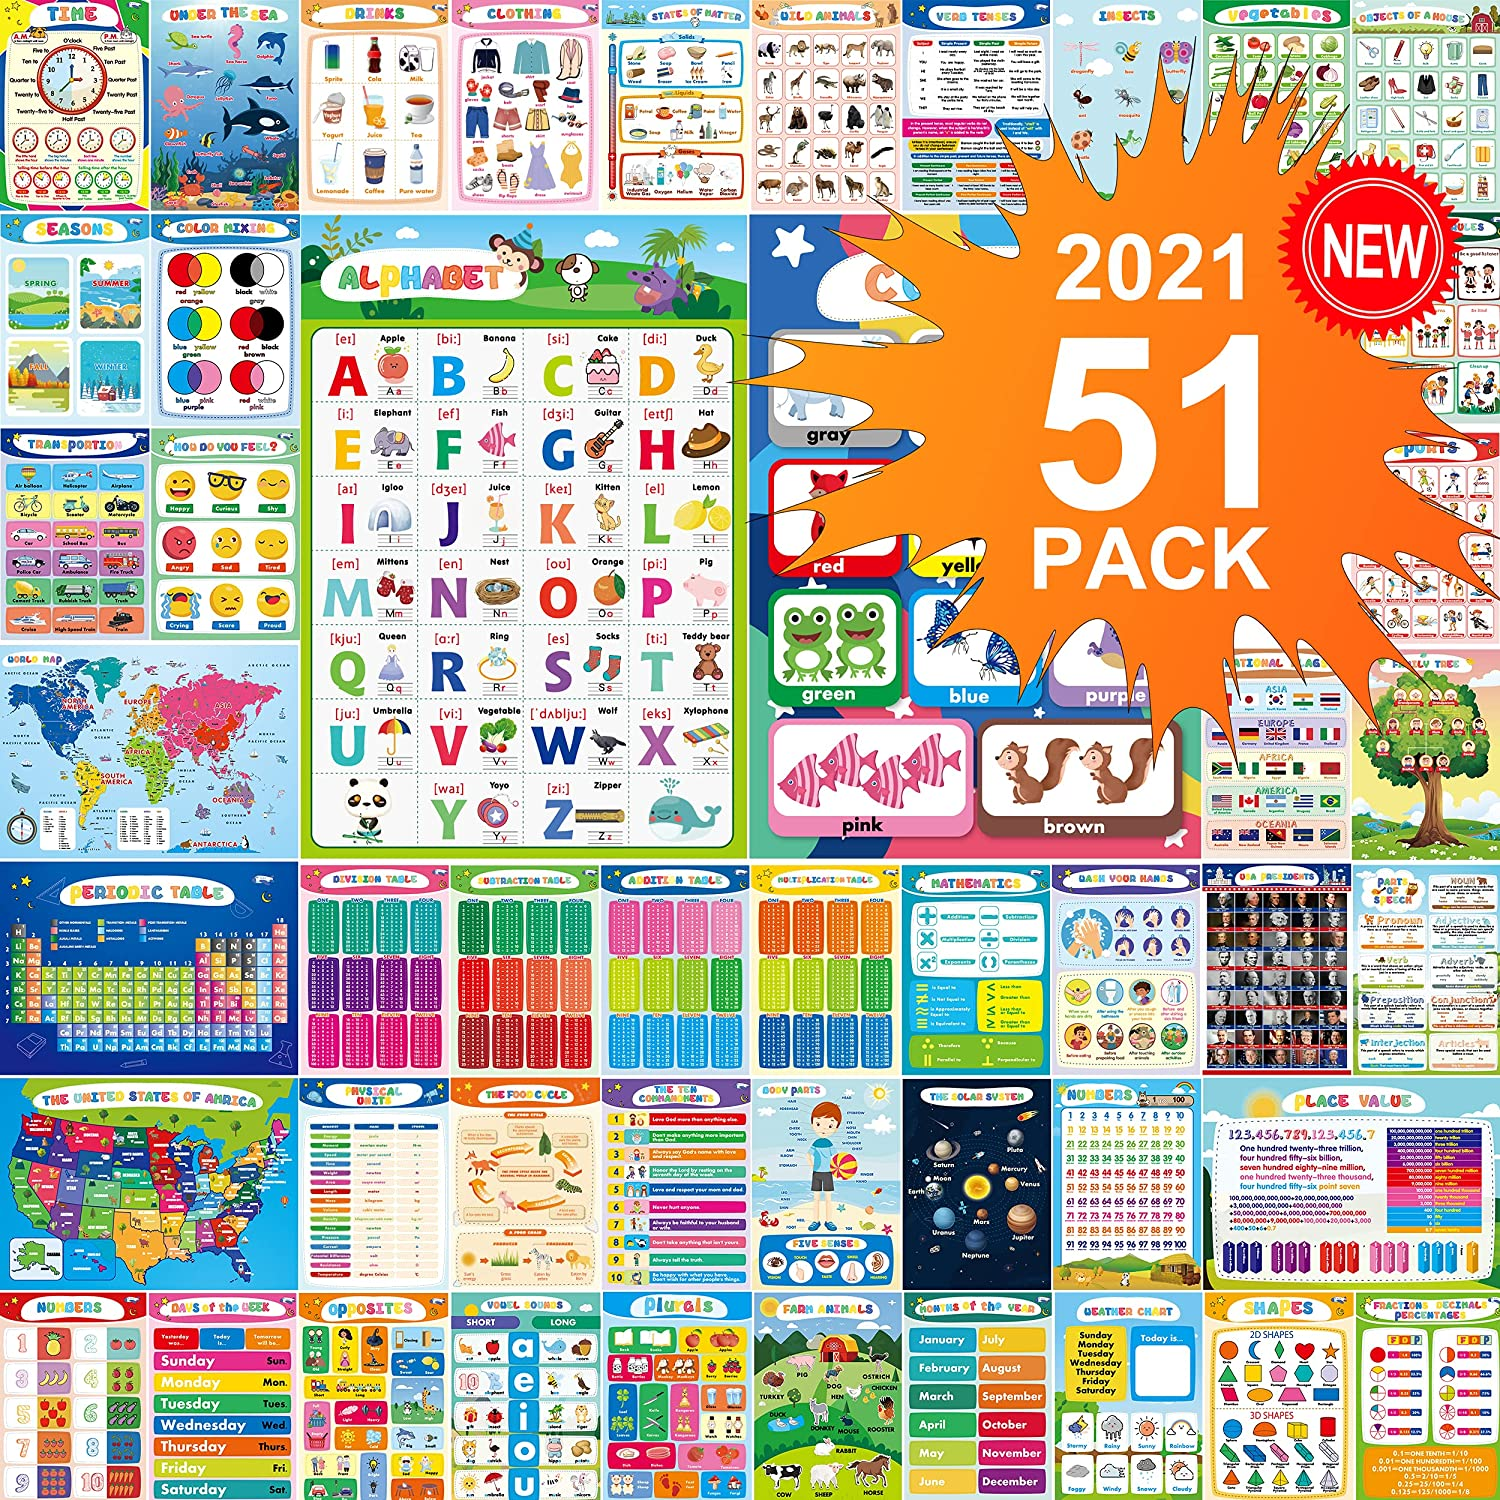 Educational Preschool Poster 51-PCS For Toddlers And Kids Posters , Nursery Homeschool, Kindergarten Classroom With 400 Glue Point Dot - Teach Numbers Alphabet Colors Days and More- Laminated - 16'' x 11'' - English 【Revised April 2021】